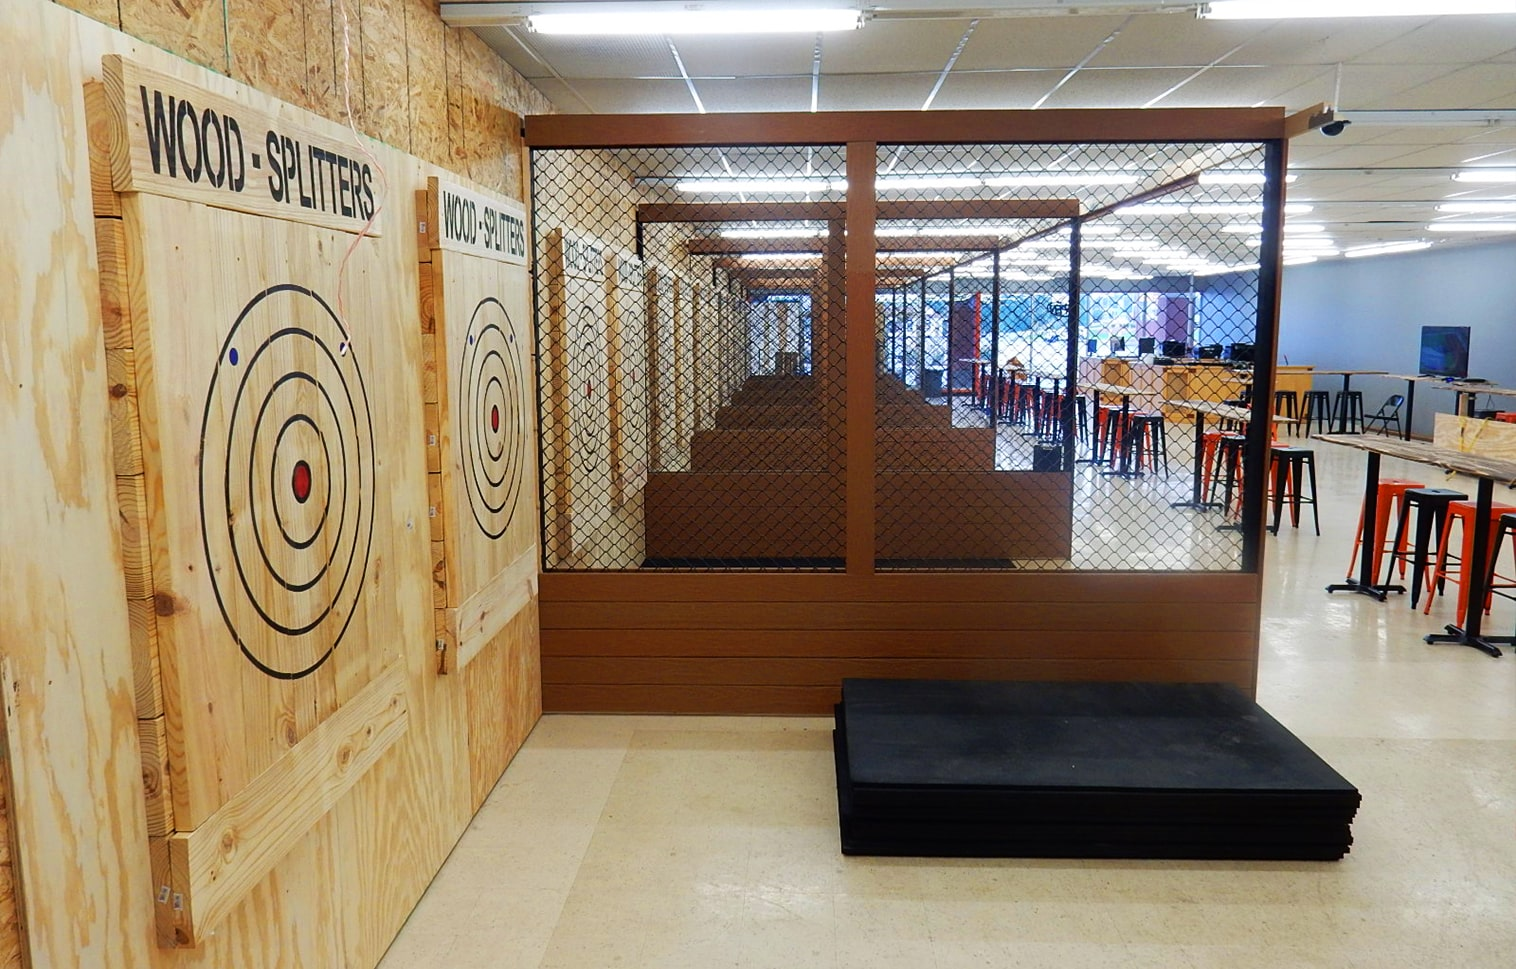 Wood Splitters Axe Throwing in Grand Rapids Feature 1